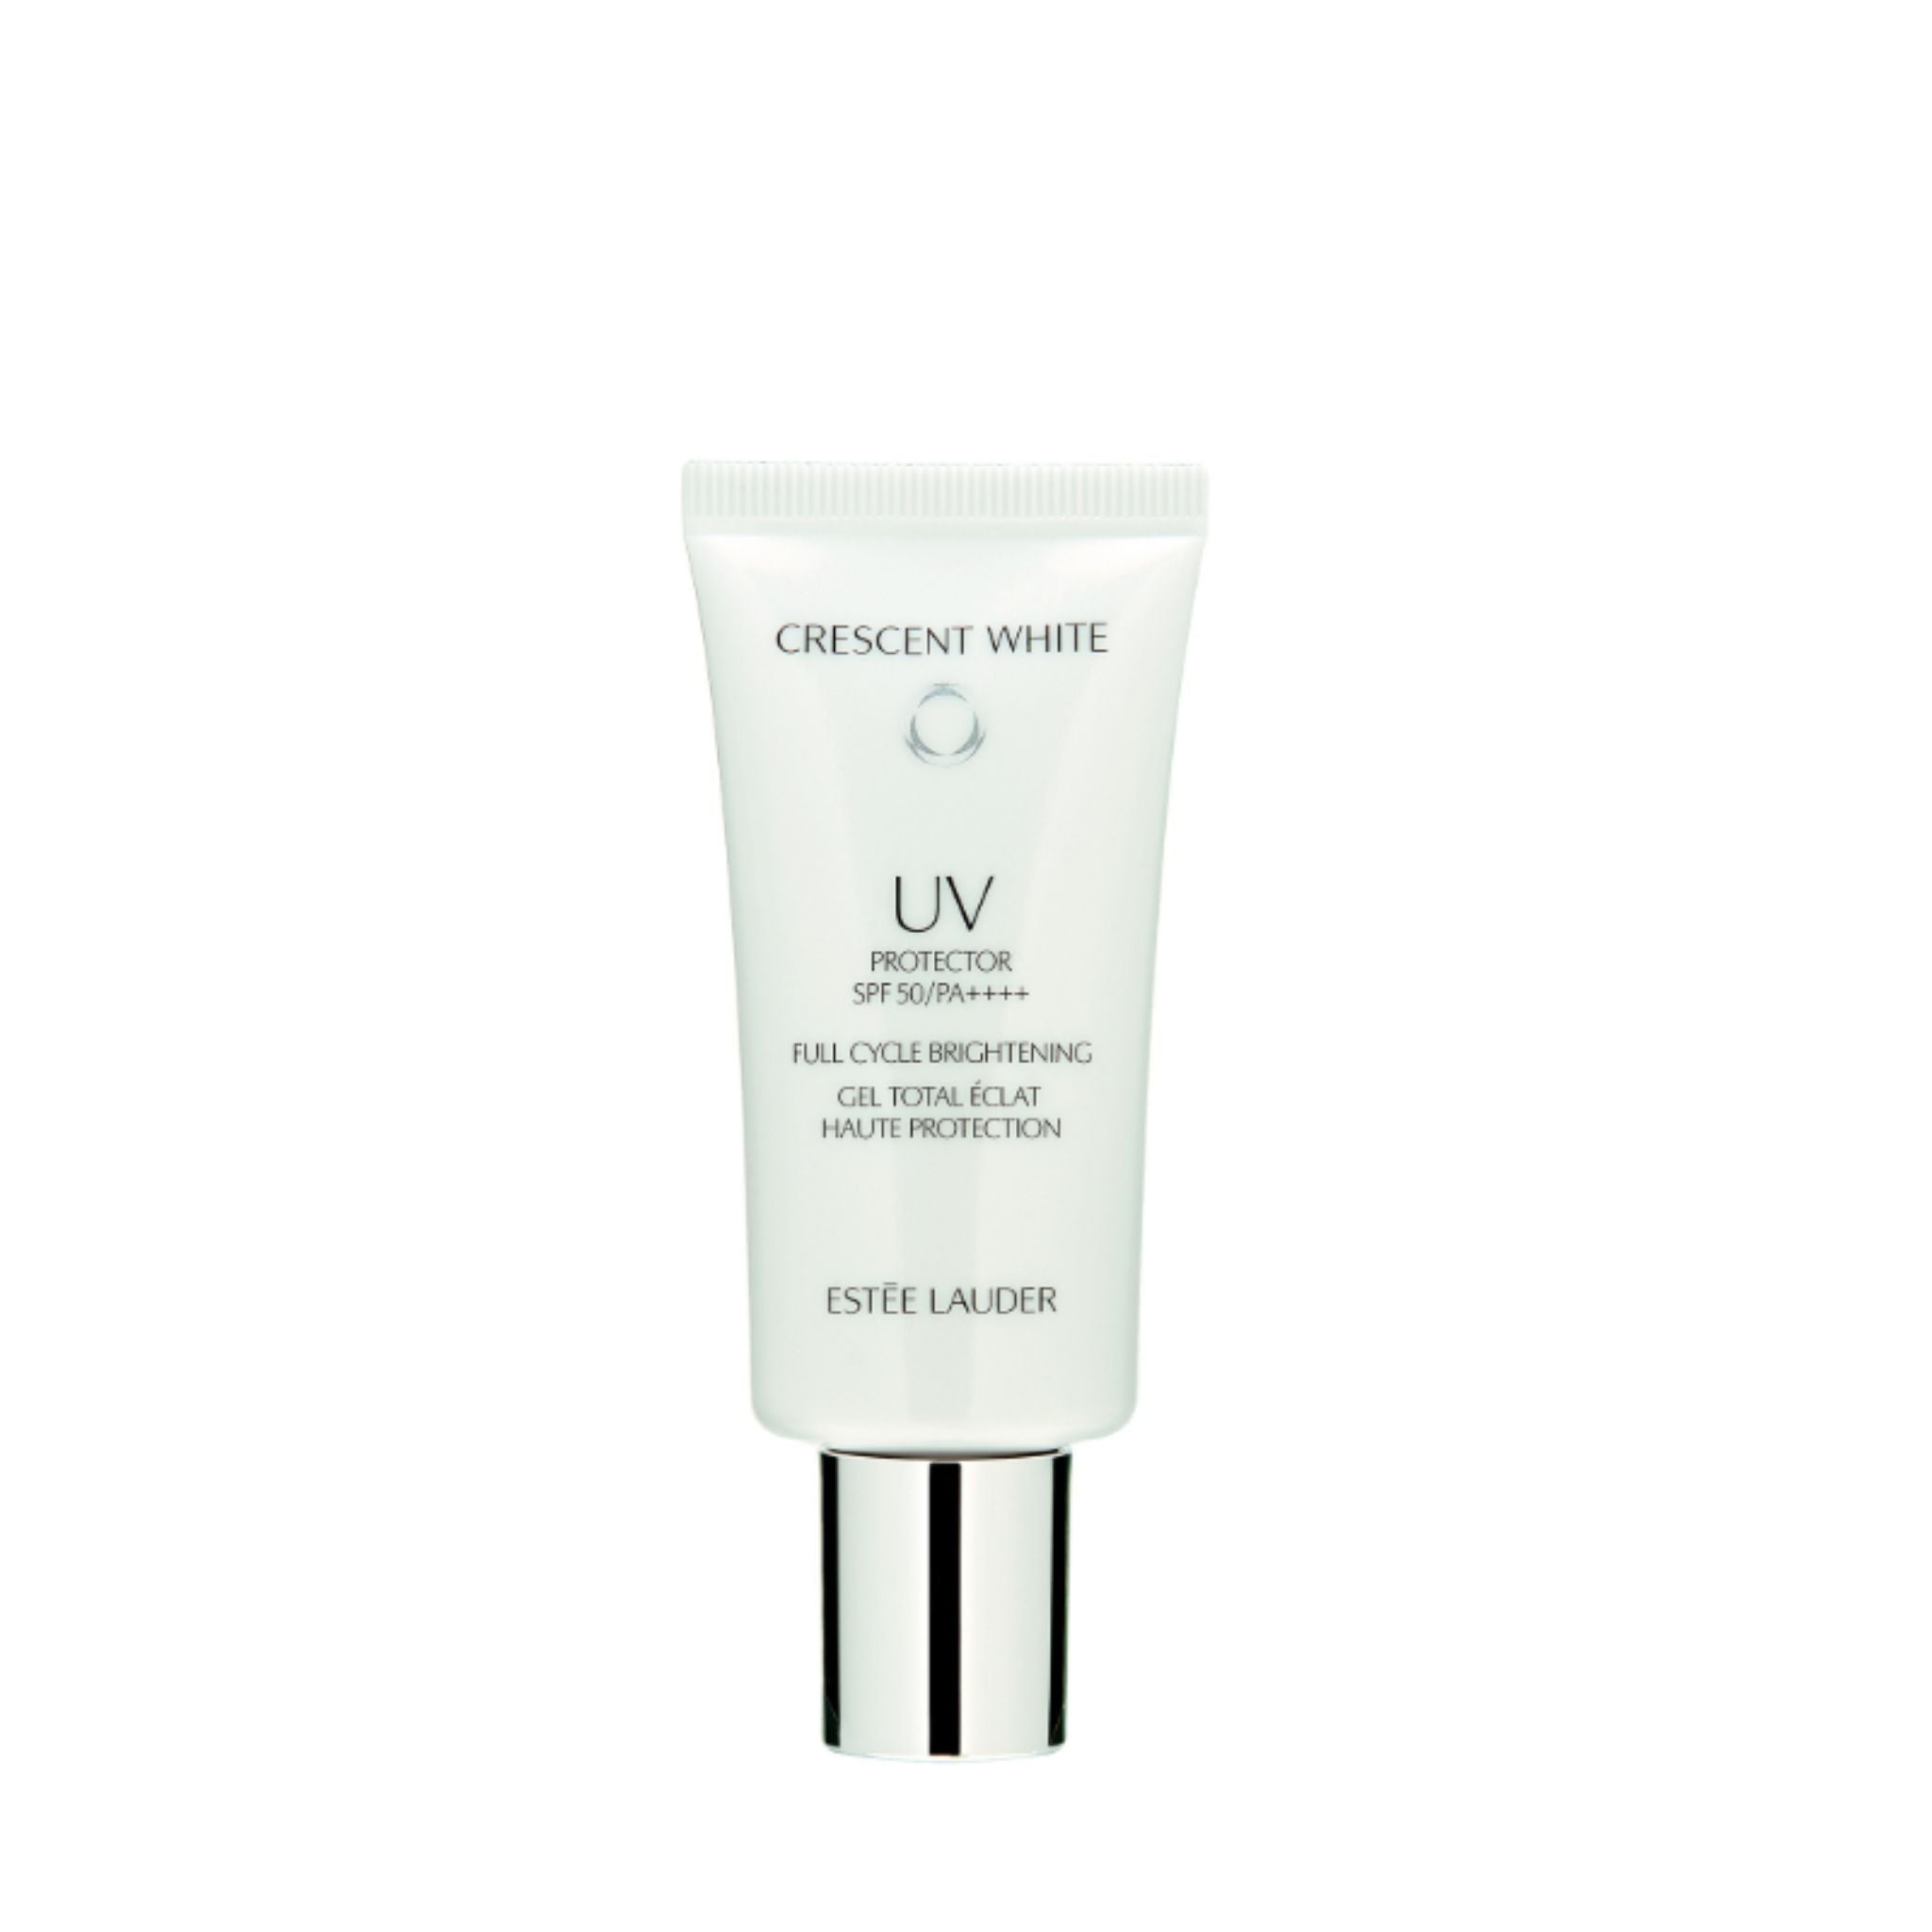 Estée Lauder Crescent White Full Cycle Brightening UV Protection SPF 50/PA++++ 30ml